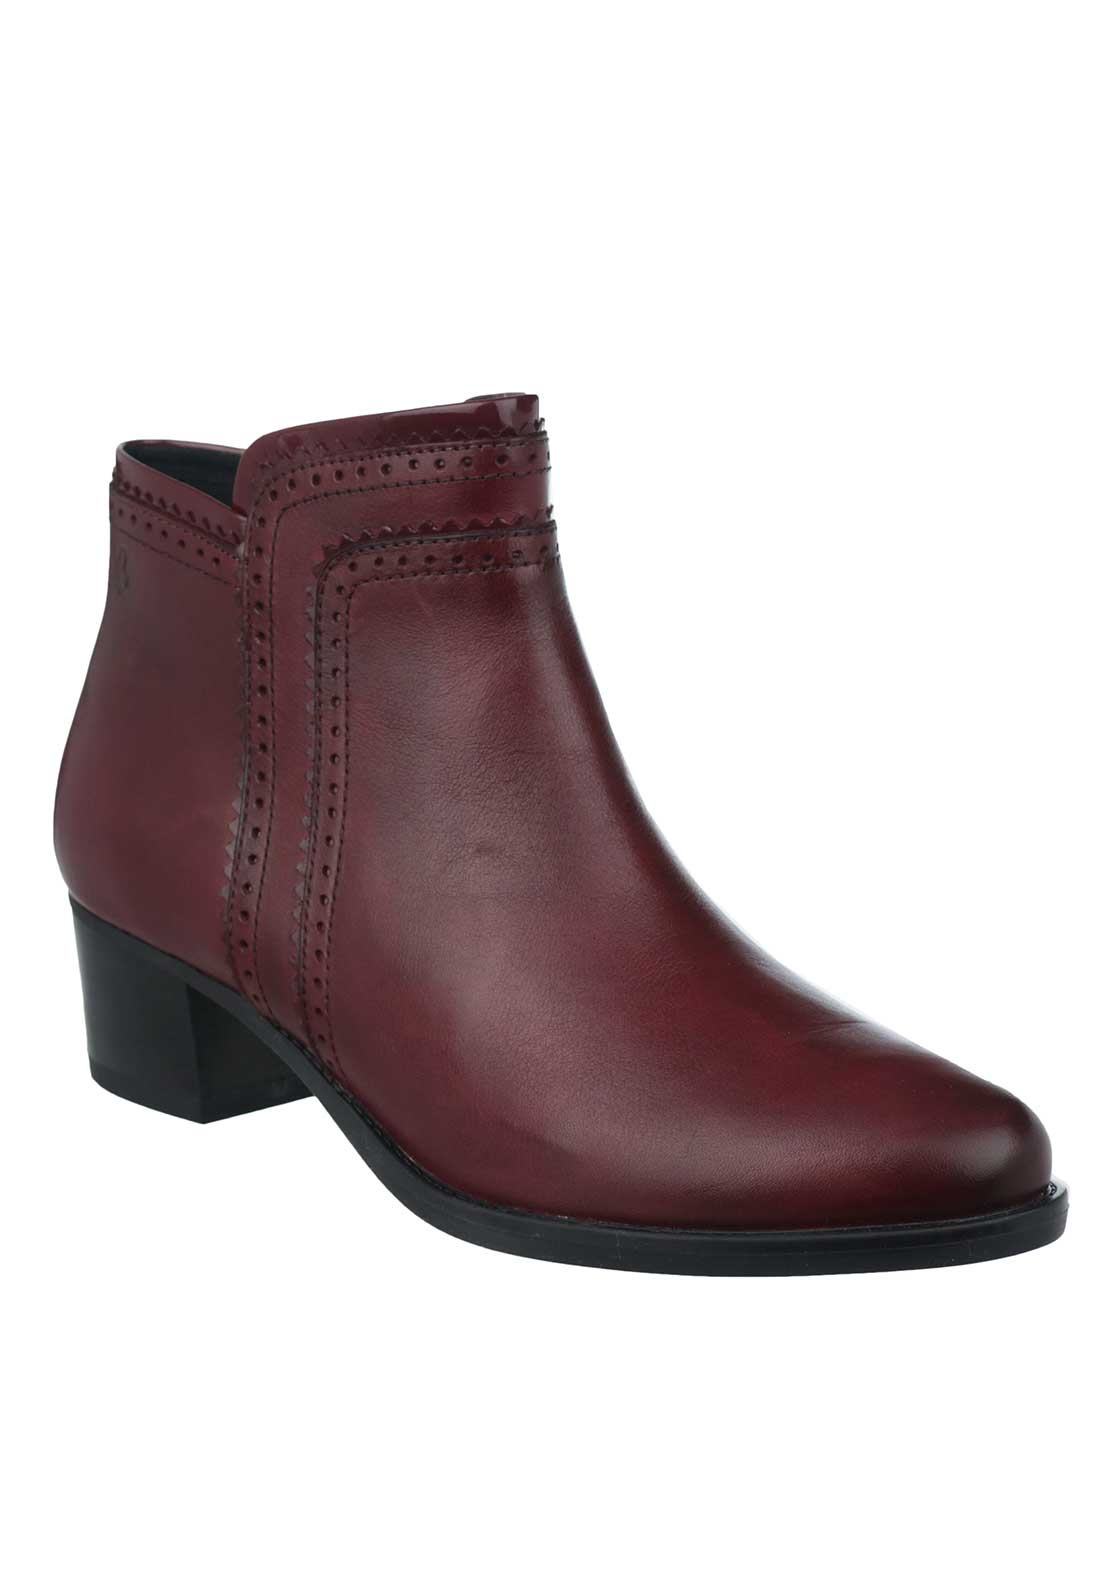 Caprice Brogue Stitched Leather Heeled Ankle Boots, Bordeaux